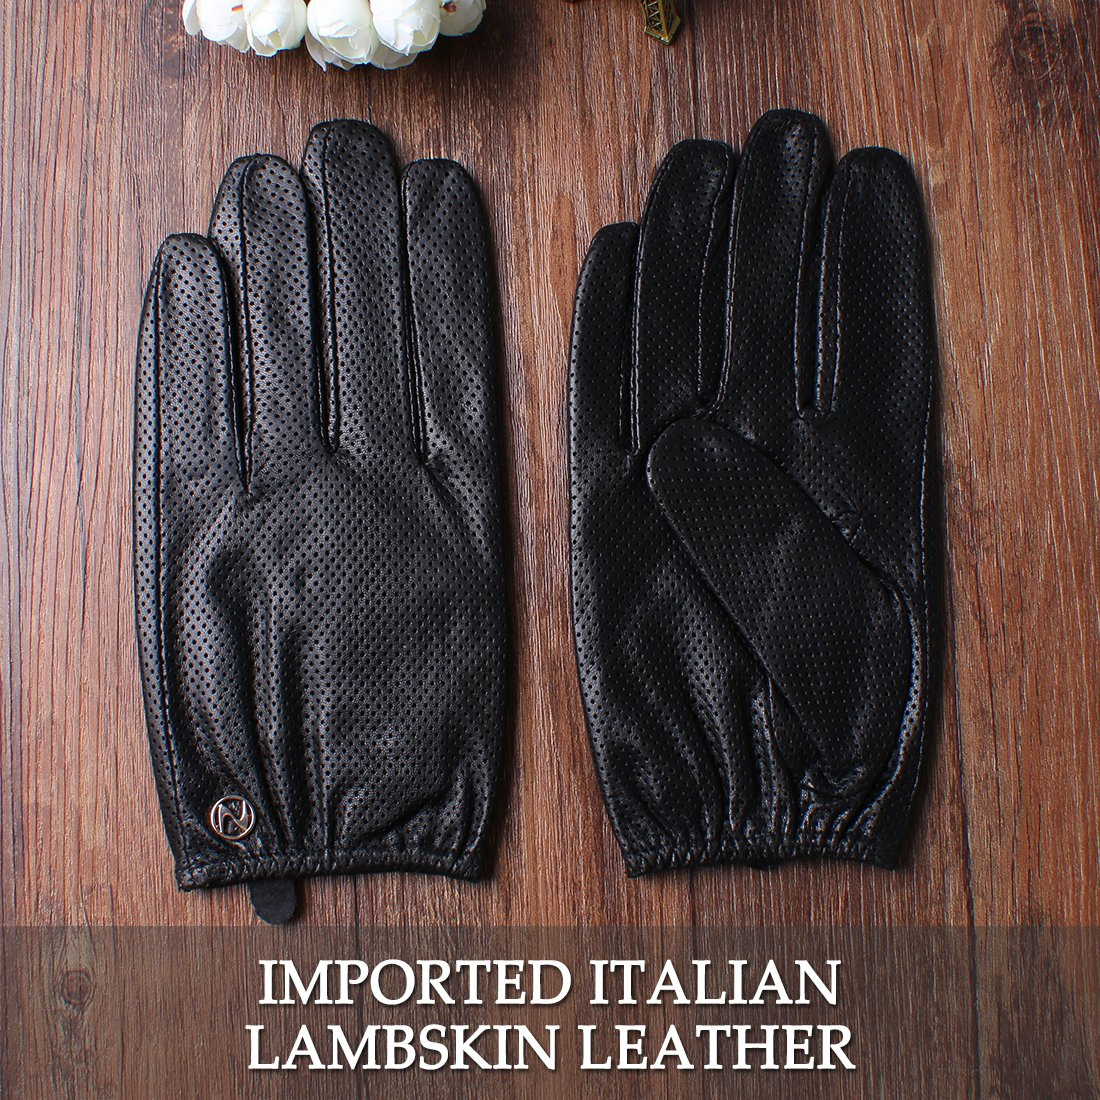 Nappaglo Men's Leather Gloves Lambskin Touchscreen Winter Warm Perforated Driving Motorcycle Mittens (M (Palm Girth:8''-8.5''), Black (Touchscreen)) by Nappaglo (Image #4)